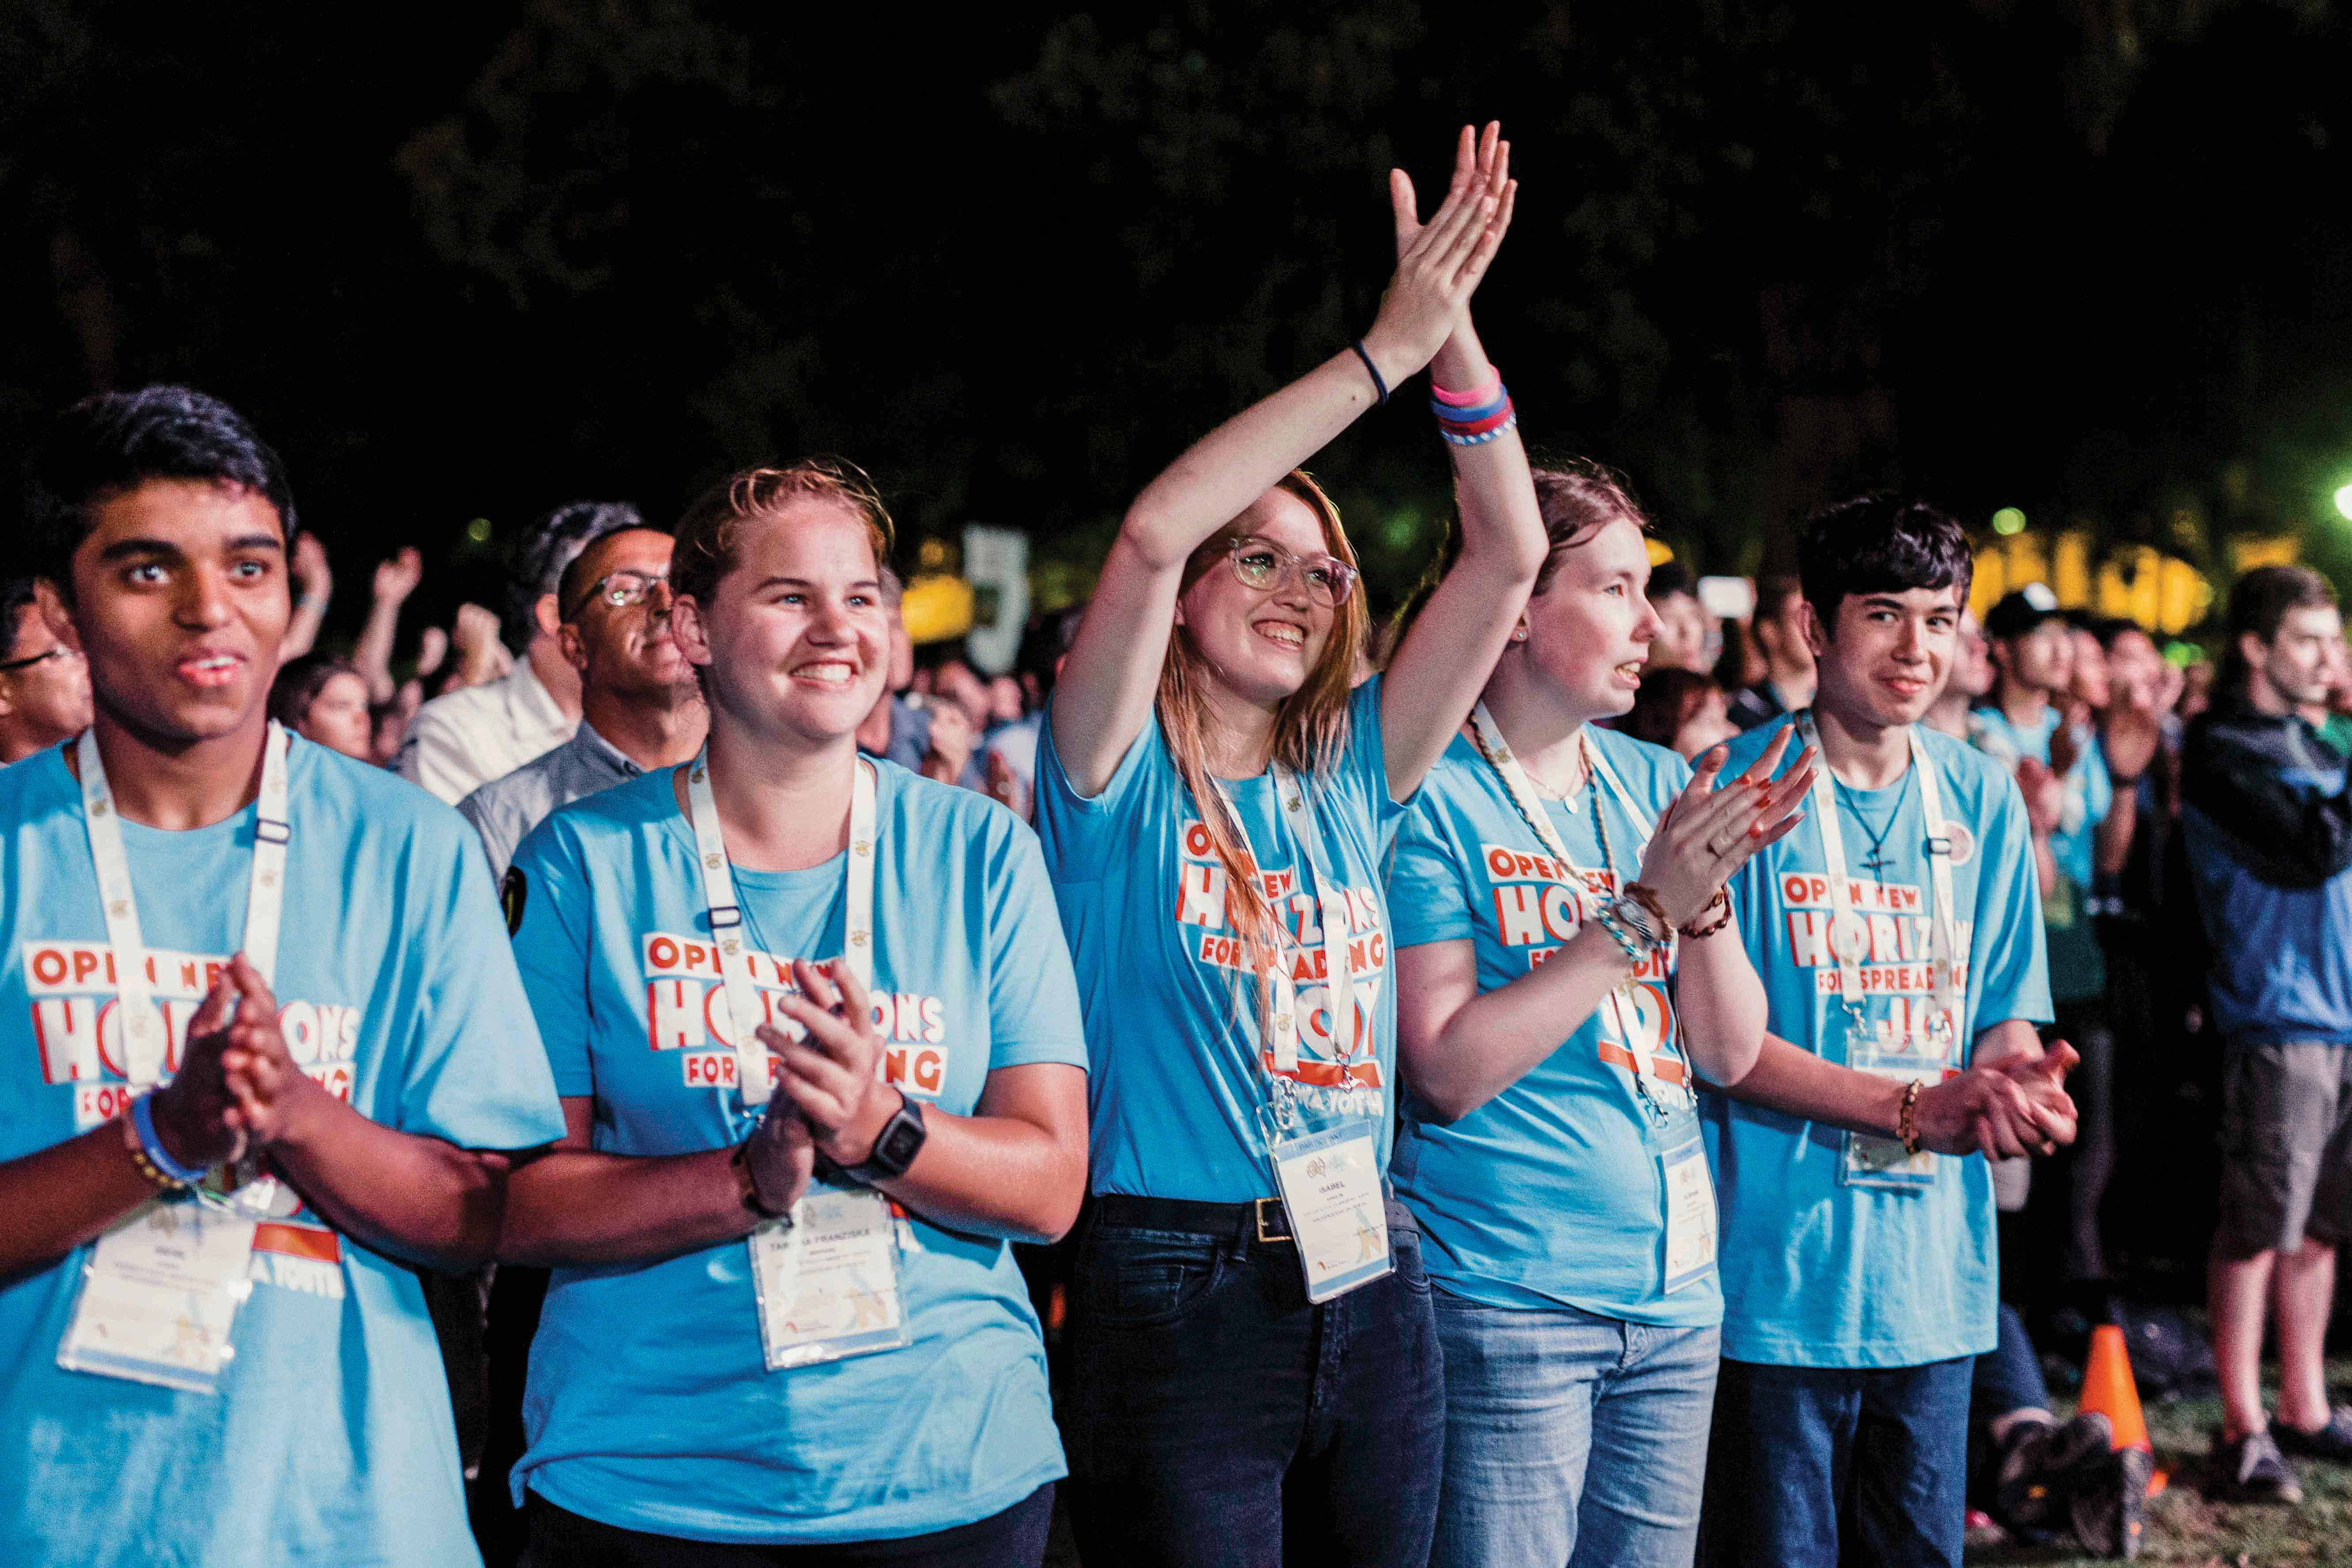 Youth react to the announcement of Perth as the host of ACYF for 2019 during the final Mass of ACYF 2017, held in Sydney. Photo: Cyron Sobrevinas.